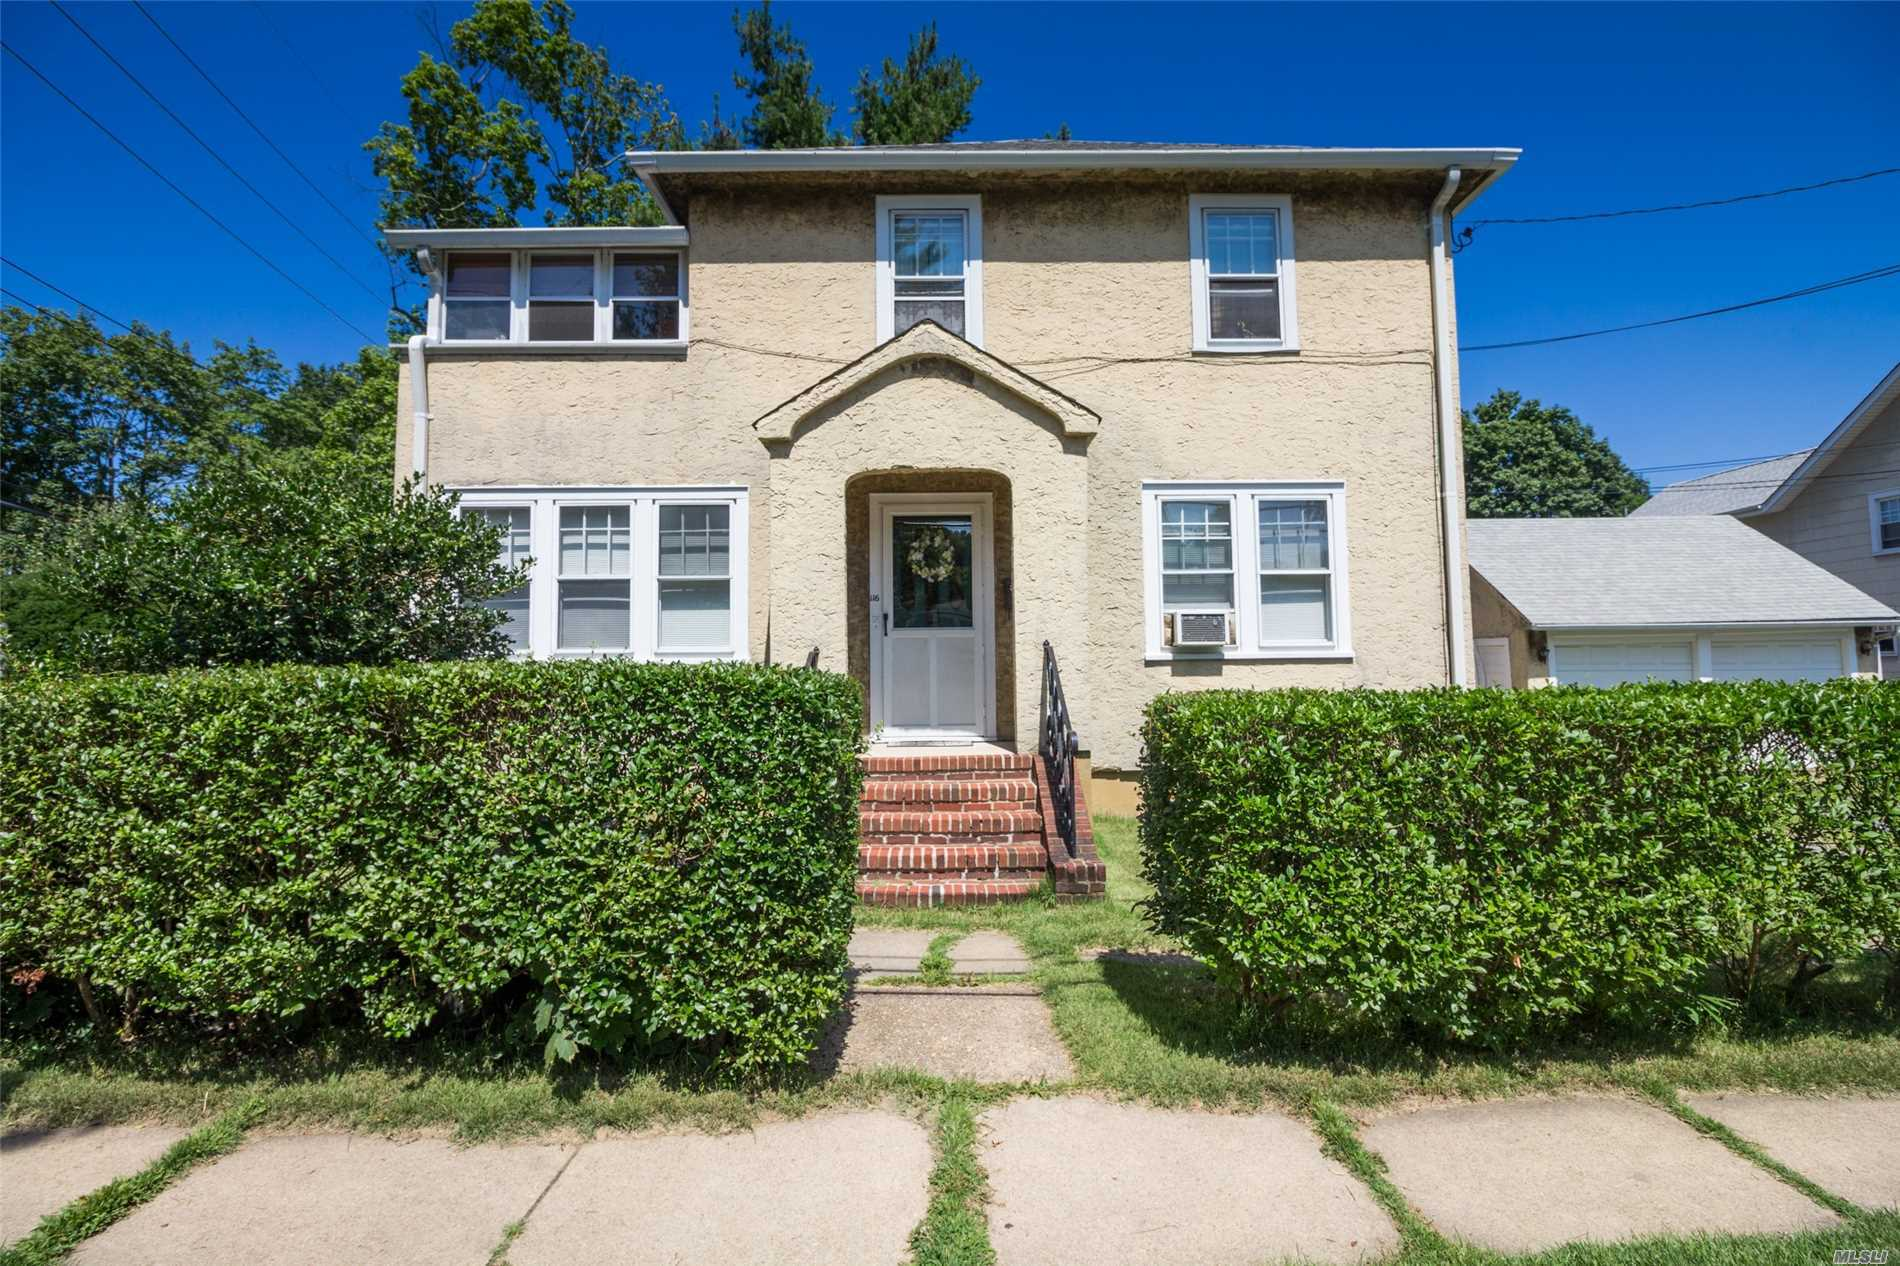 4 Bedrooms, 2 Full Baths, 2 Eat In Kitchens, Living Rooms With Fireplace, Sunroom, Glassed In Porch. Call Your Investors! Huge Corner Property, Endless Possibilities, Income Producer.